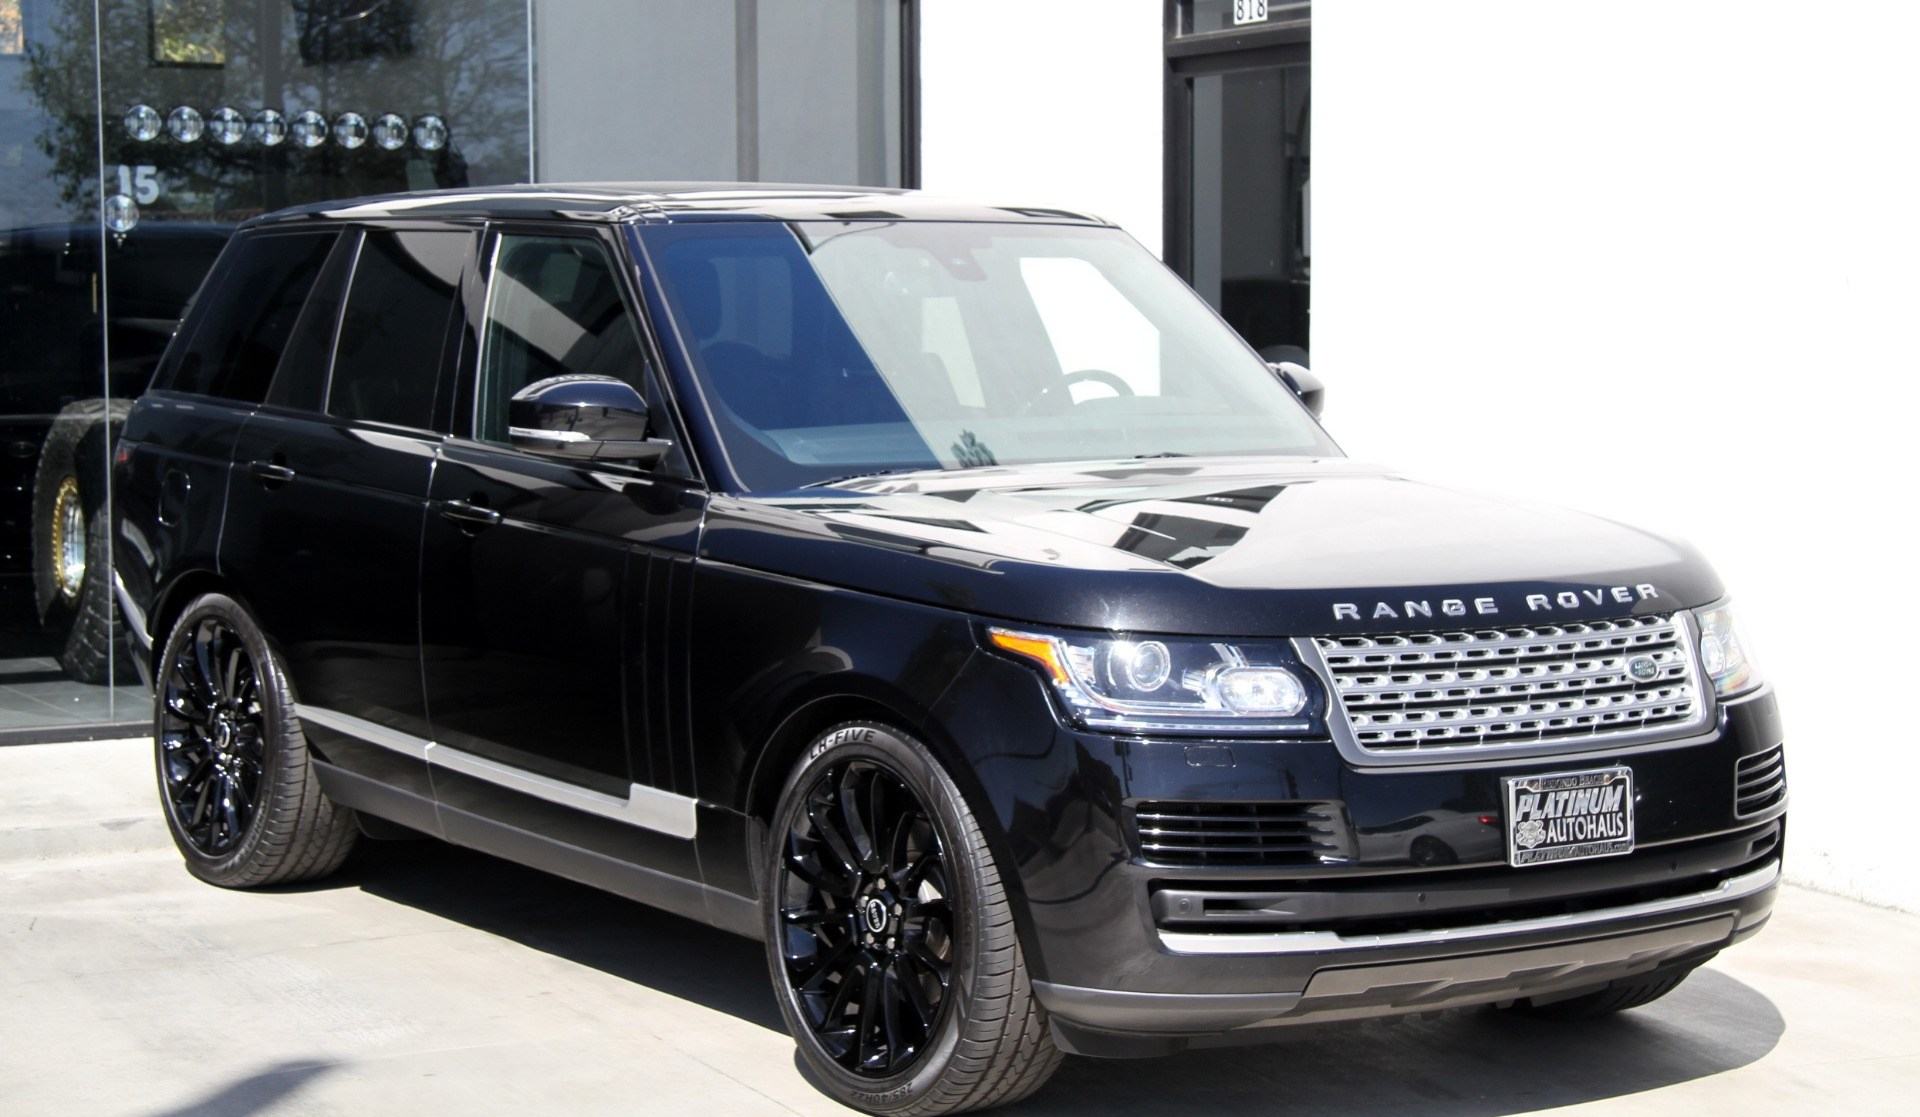 2015 Land Rover Range Rover HSE Stock 5972 for sale near Redondo